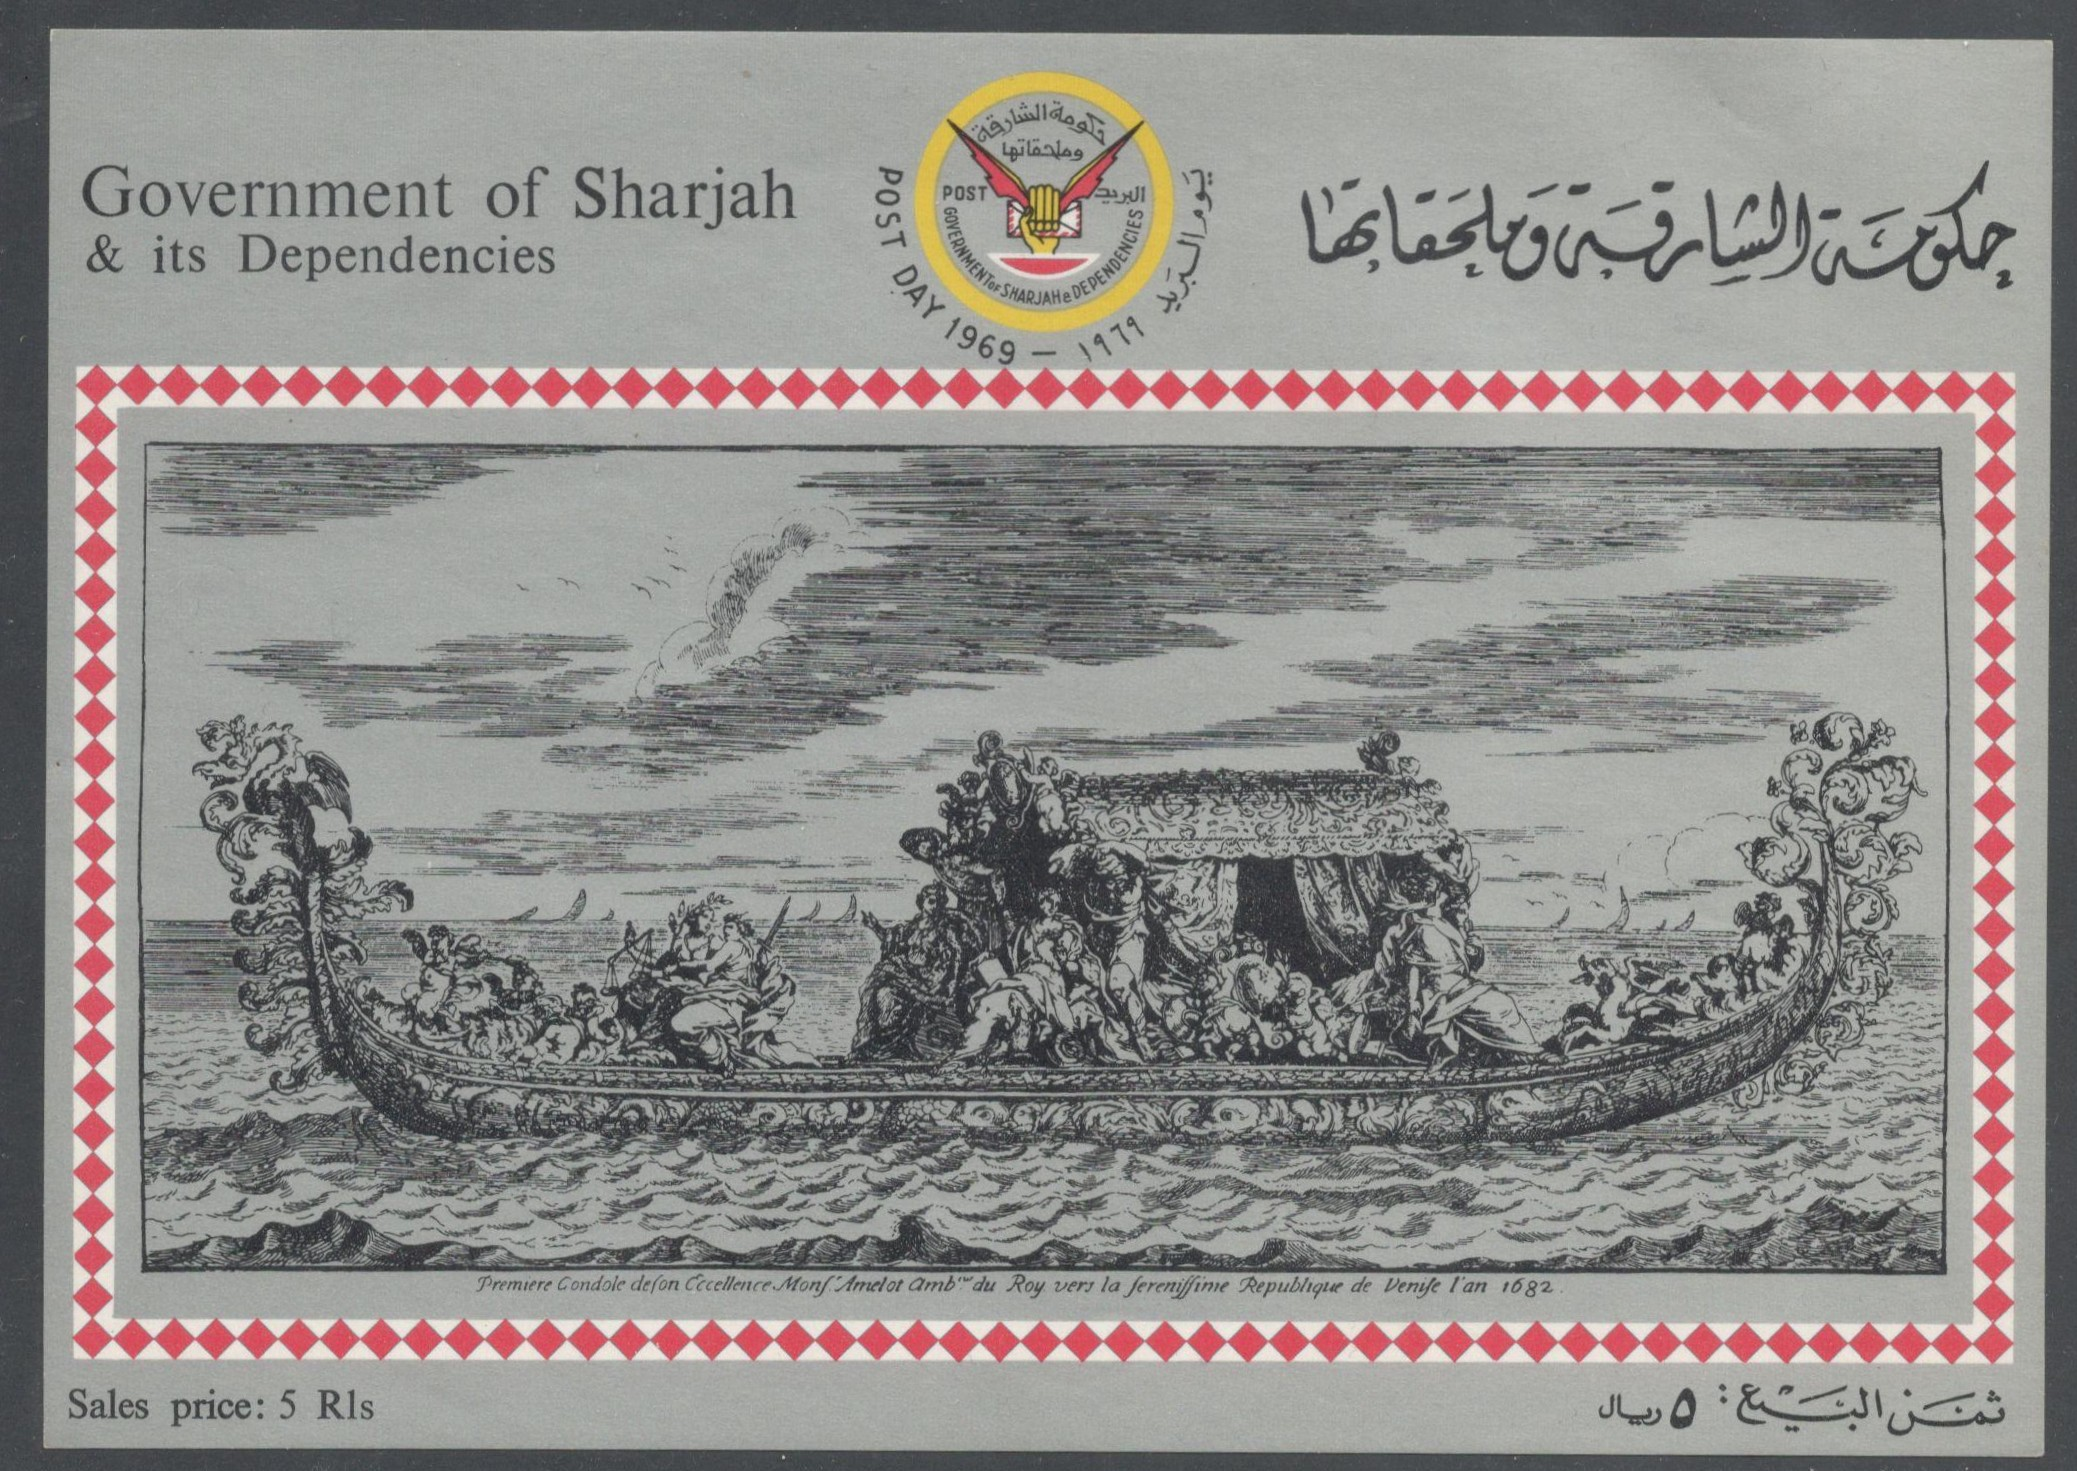 SOUVENIR SHEET GOVERNMENT OF SHARJAH & ITS DEPENDENCIES - POST DAY 1969